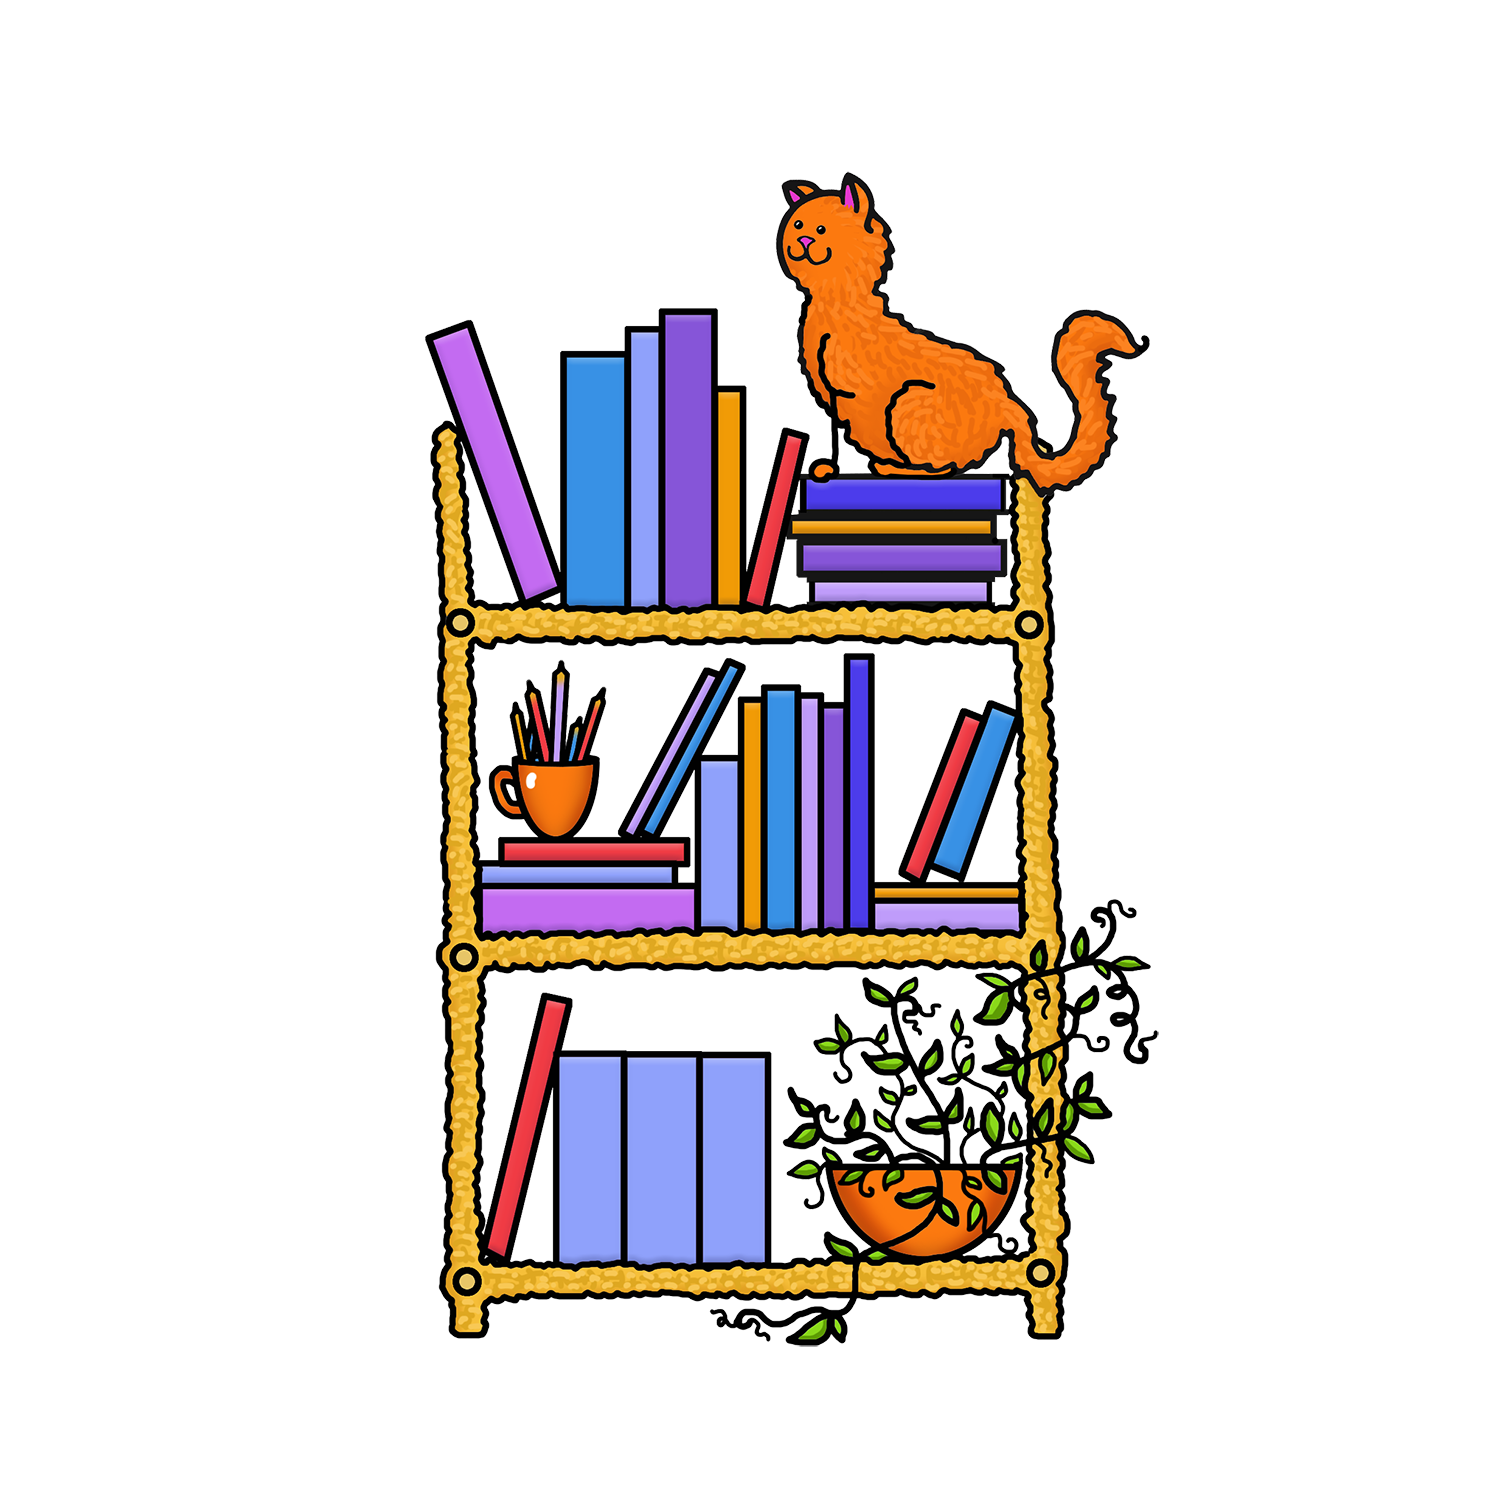 Librarian clipart shelve. Book shelf color png